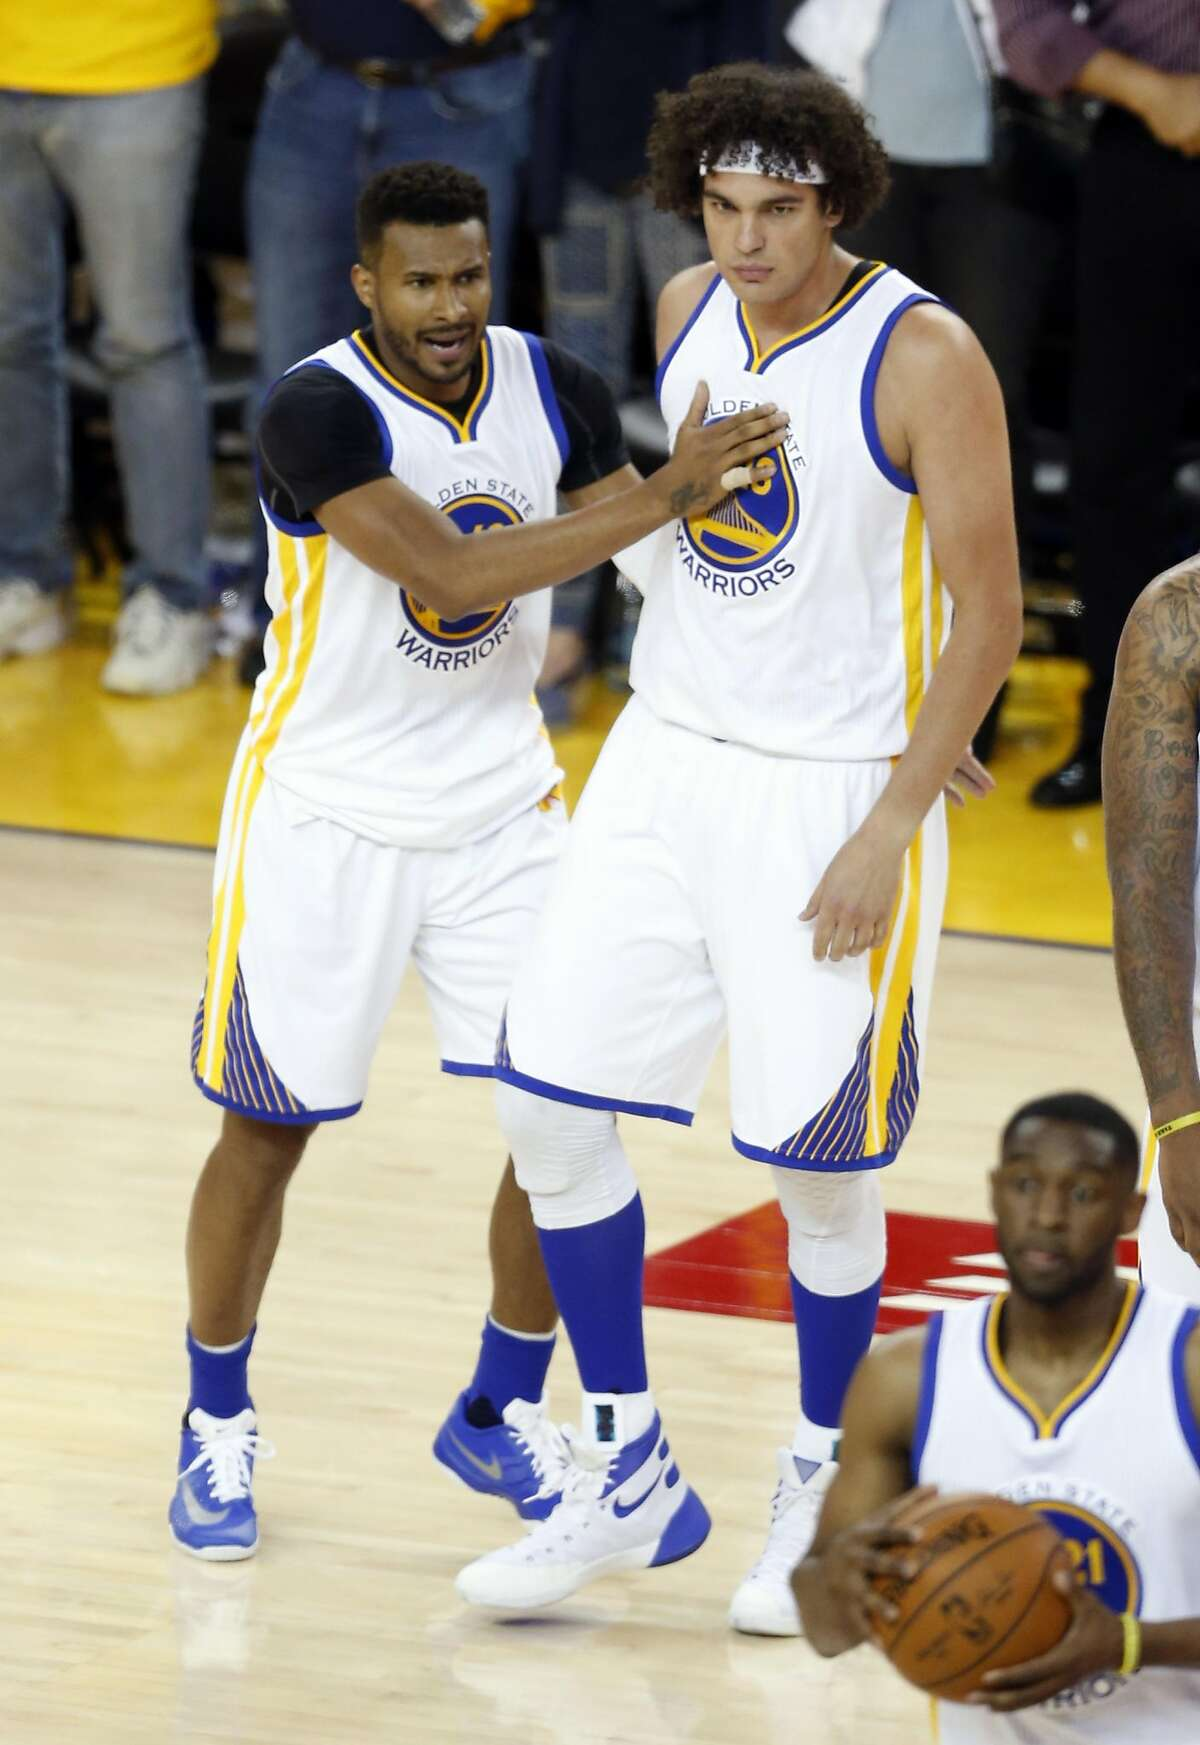 Golden State Warriors' Leandro Barbosa and Anderson Varejao at en dog 104-78 win over Houston Rockets in Game 1 of 1st round of NBA Playoffs at Oracle Arena in Oakland, Calif., on Saturday, April 16, 2016.